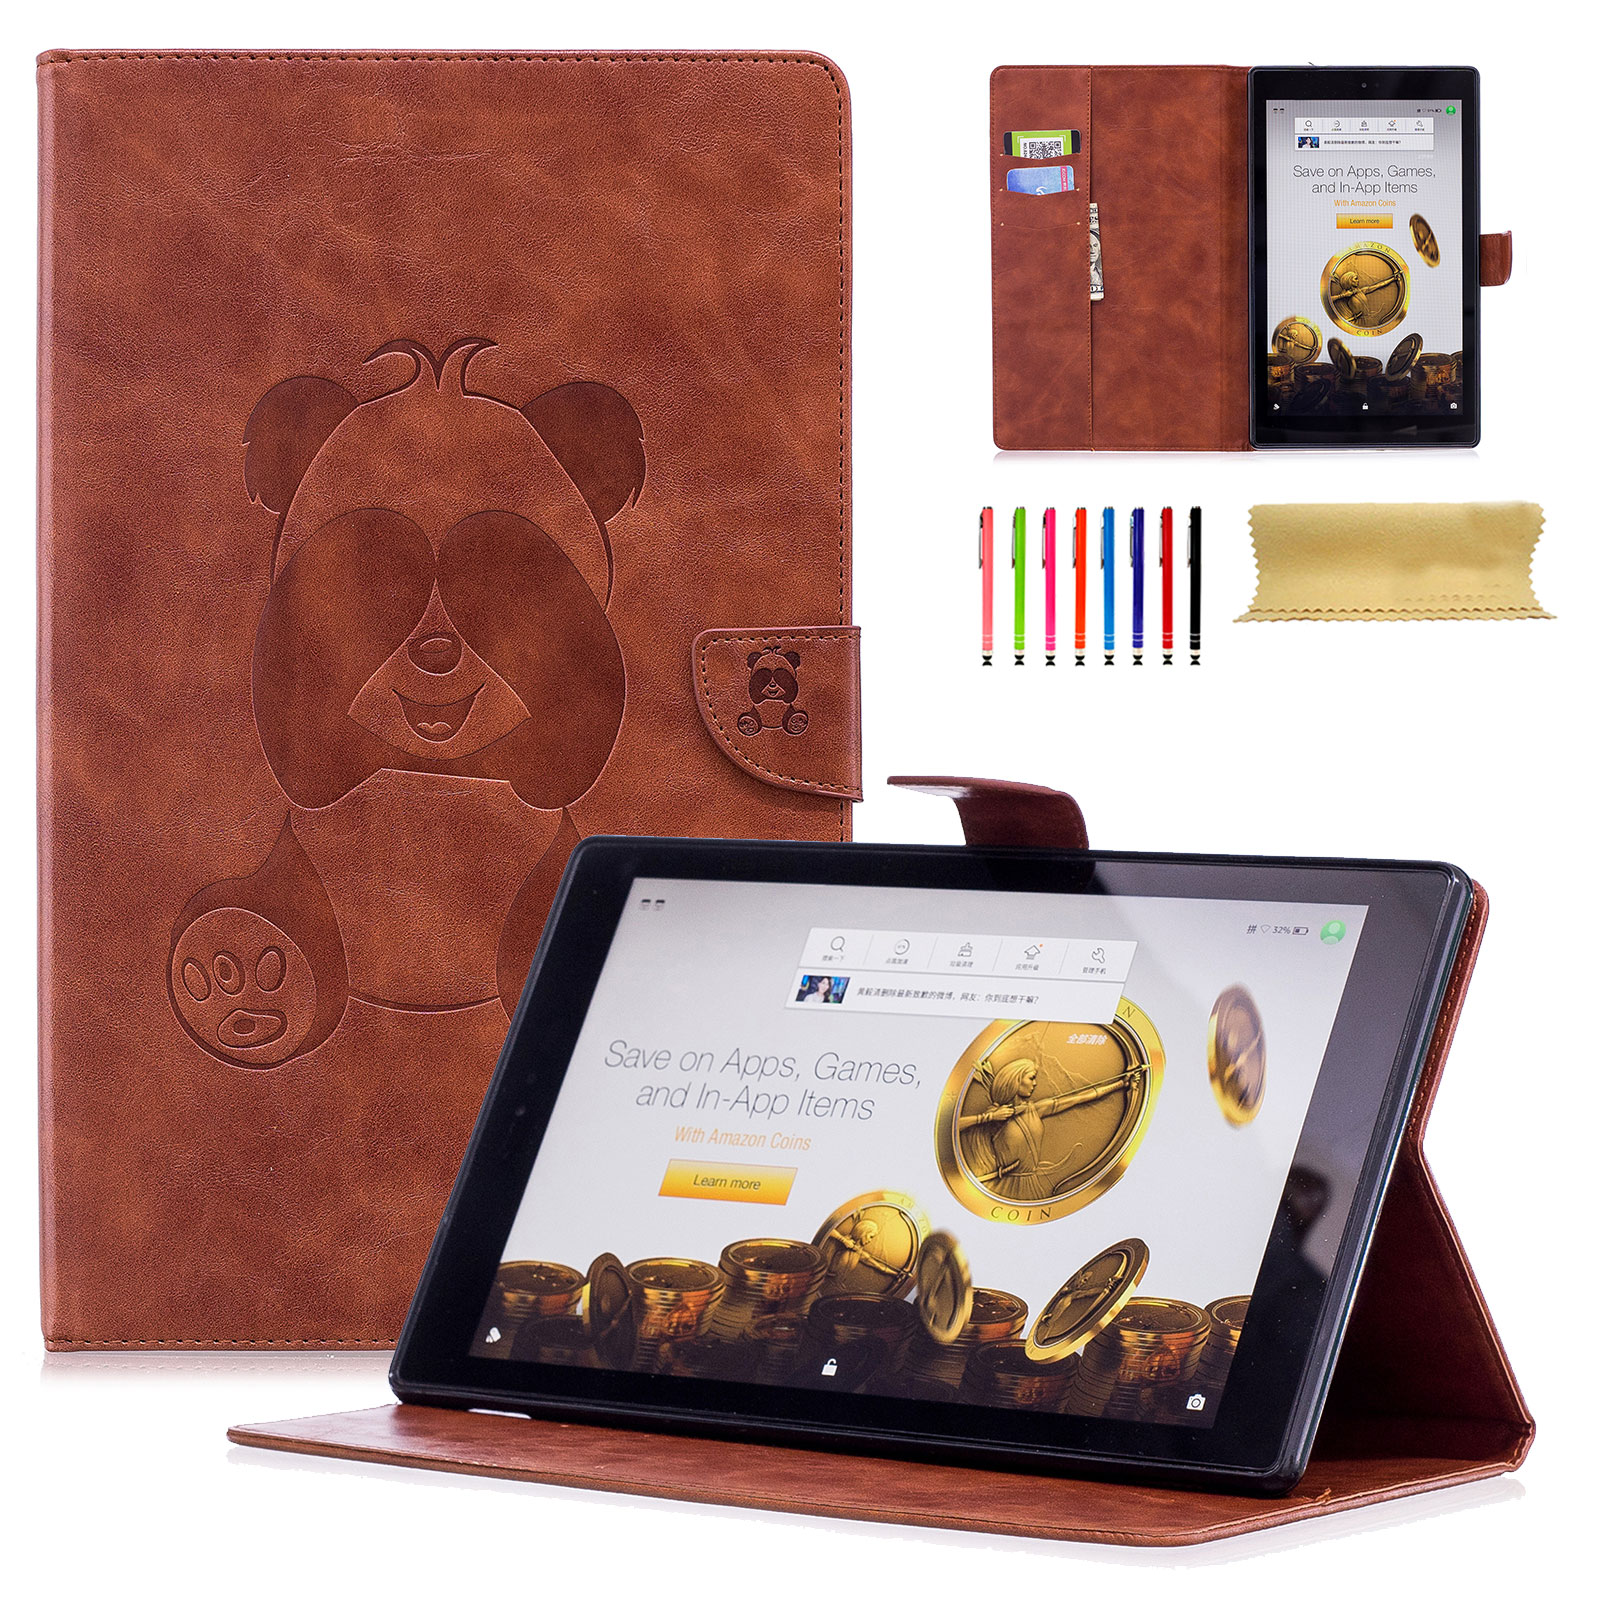 Fire HD 10 2017 7th Generation Case, Fire HD 10 2015 5th Generation Cover, Goodest [Panda Series] Ultra Thin PU Leather Flip Stand Case with Auto Wake/ Sleep for Amazon Fire HD 10 Tablet, Brown